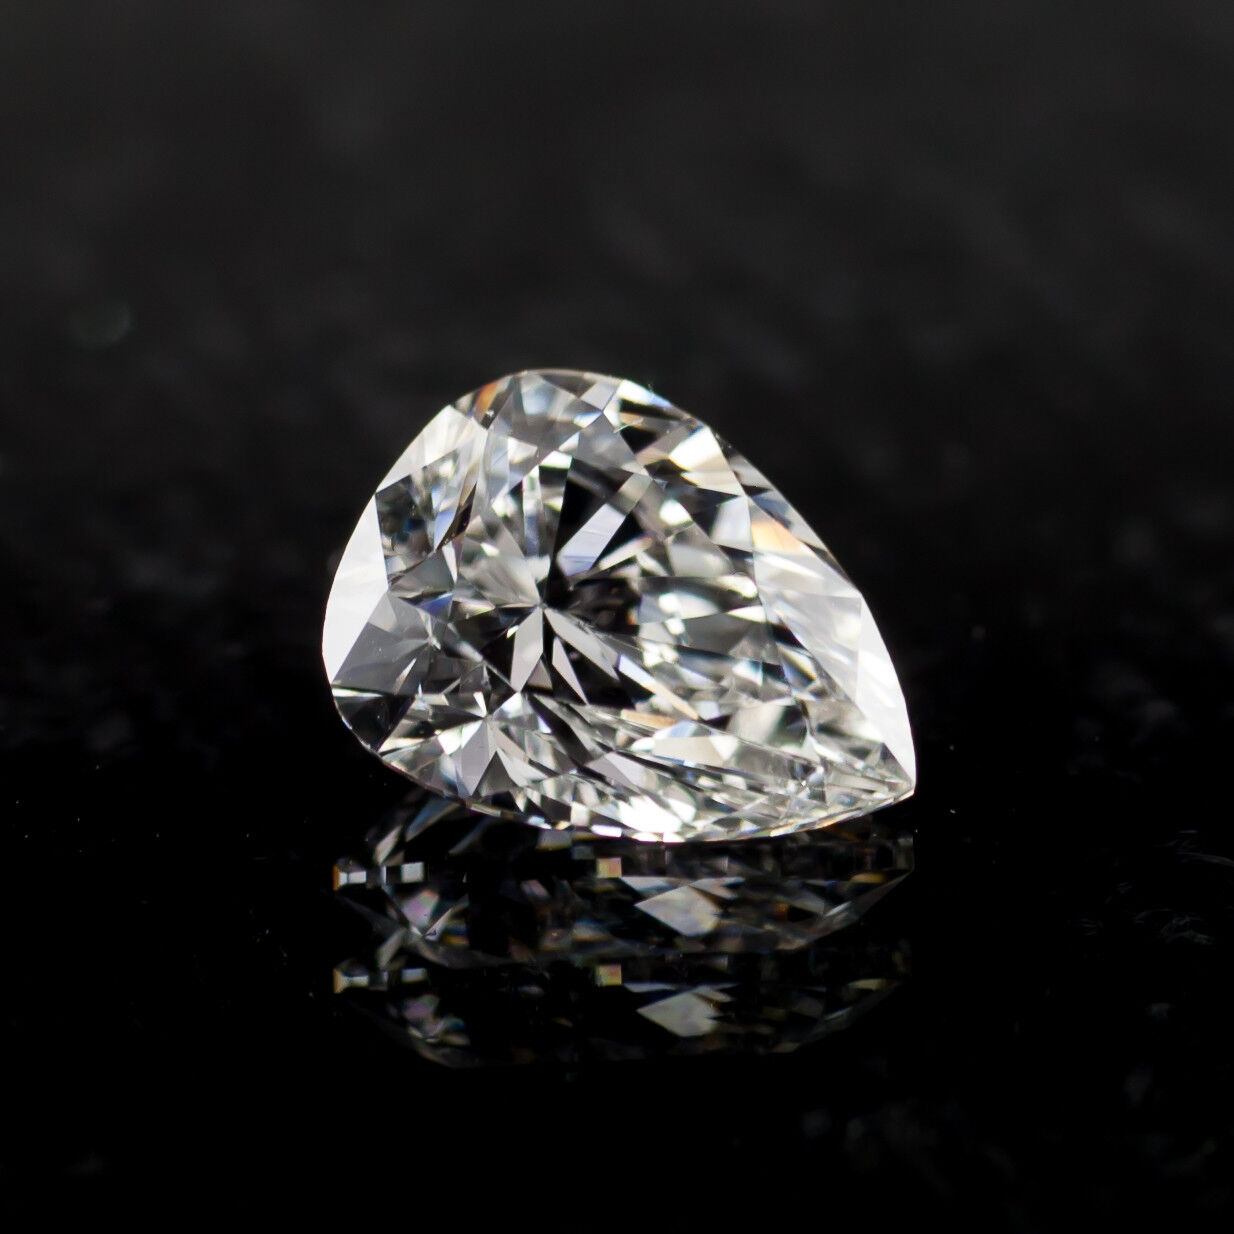 1.08 Carat Loose F / VS2 Marquise Brilliant Cut Diamond GIA Certified